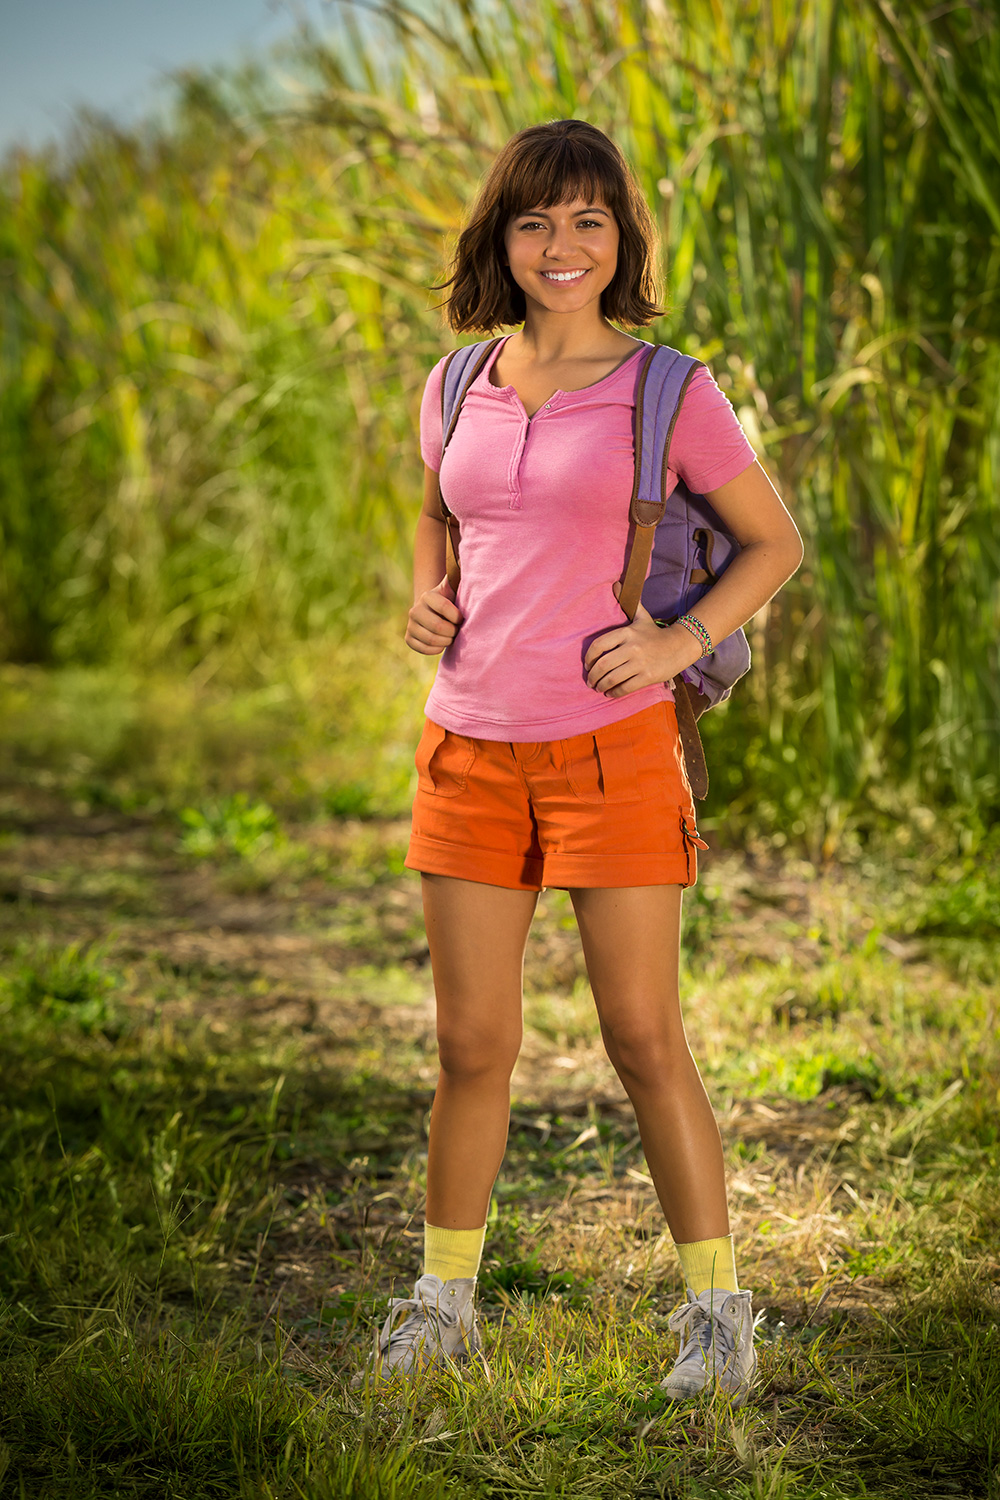 dora-the-explorer-isabela-moner